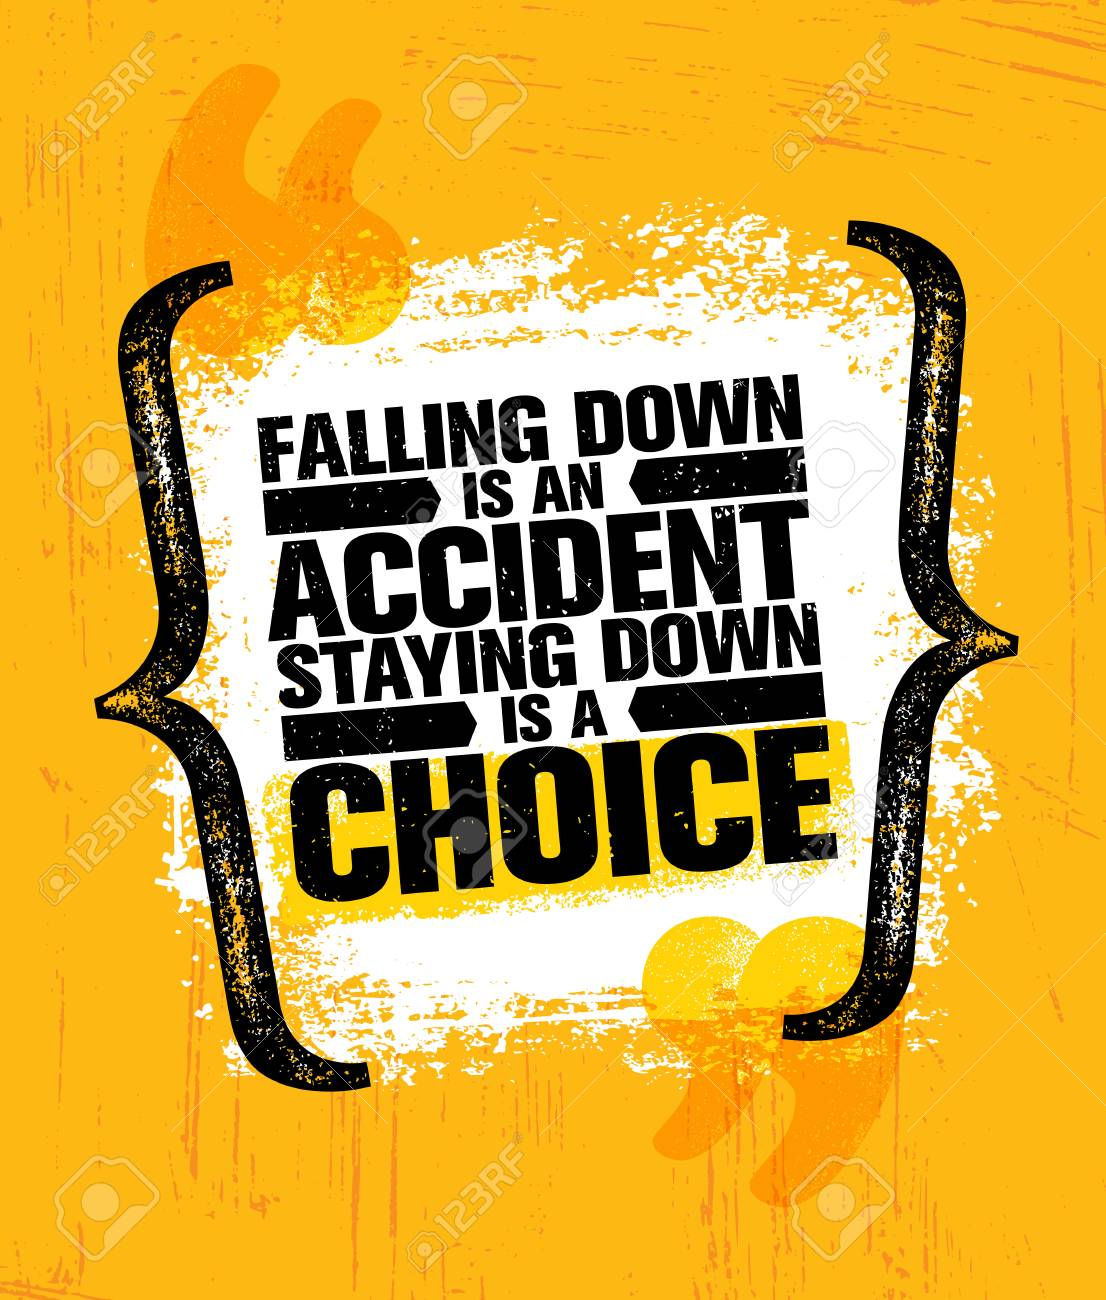 93016105-falling-down-is-an-accident-sta